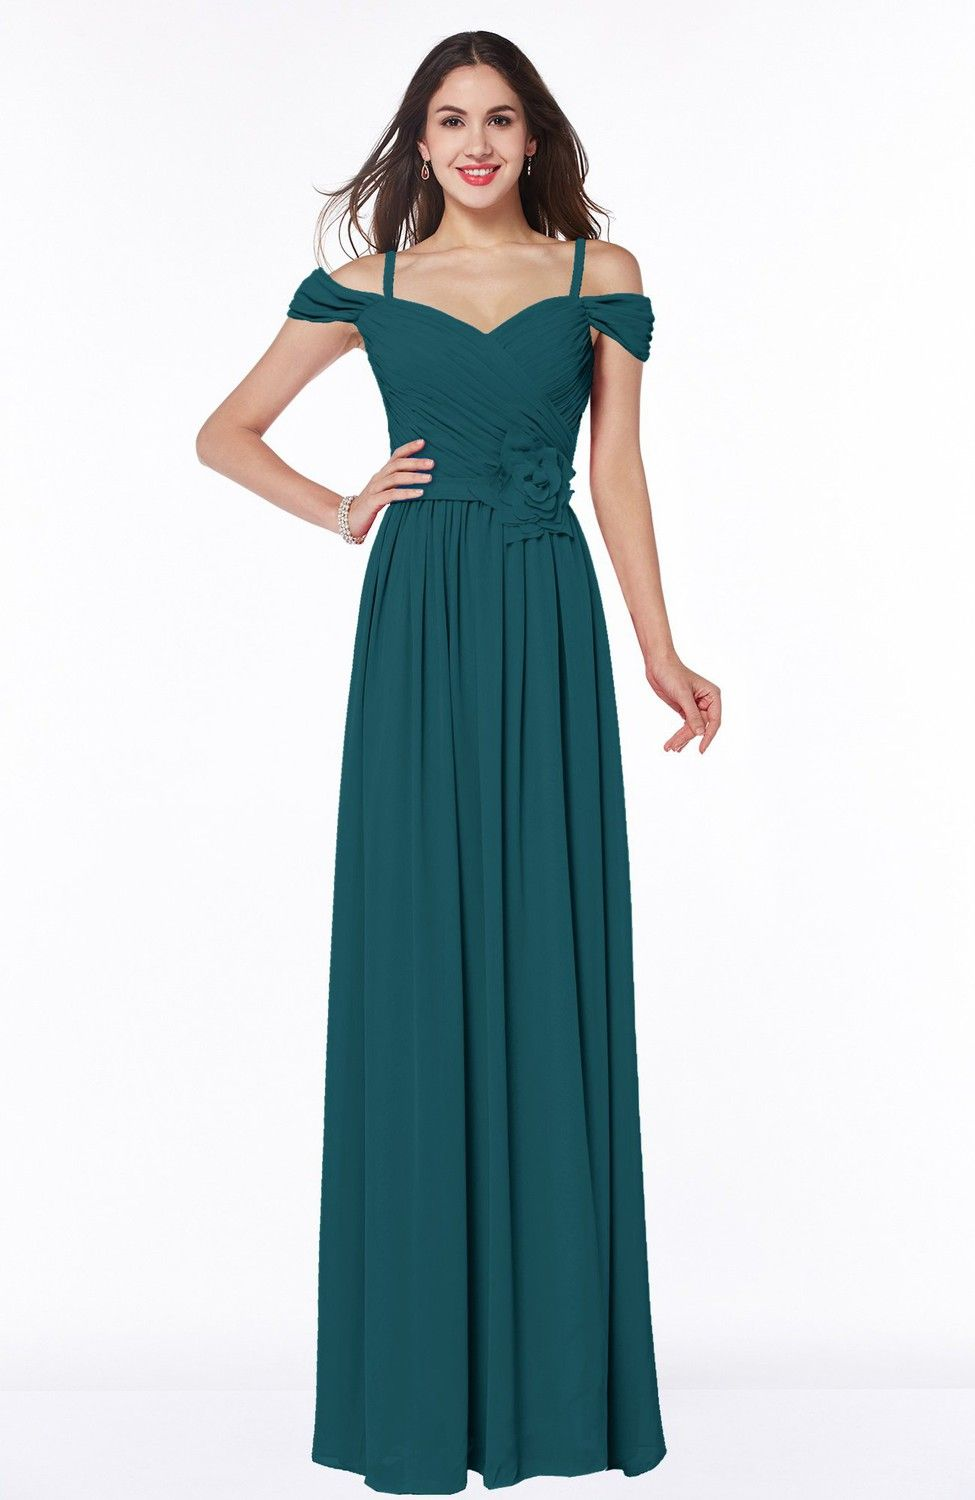 Blue Green Bridesmaid Dress - Gorgeous A-line Off-the-Shoulder Short ...